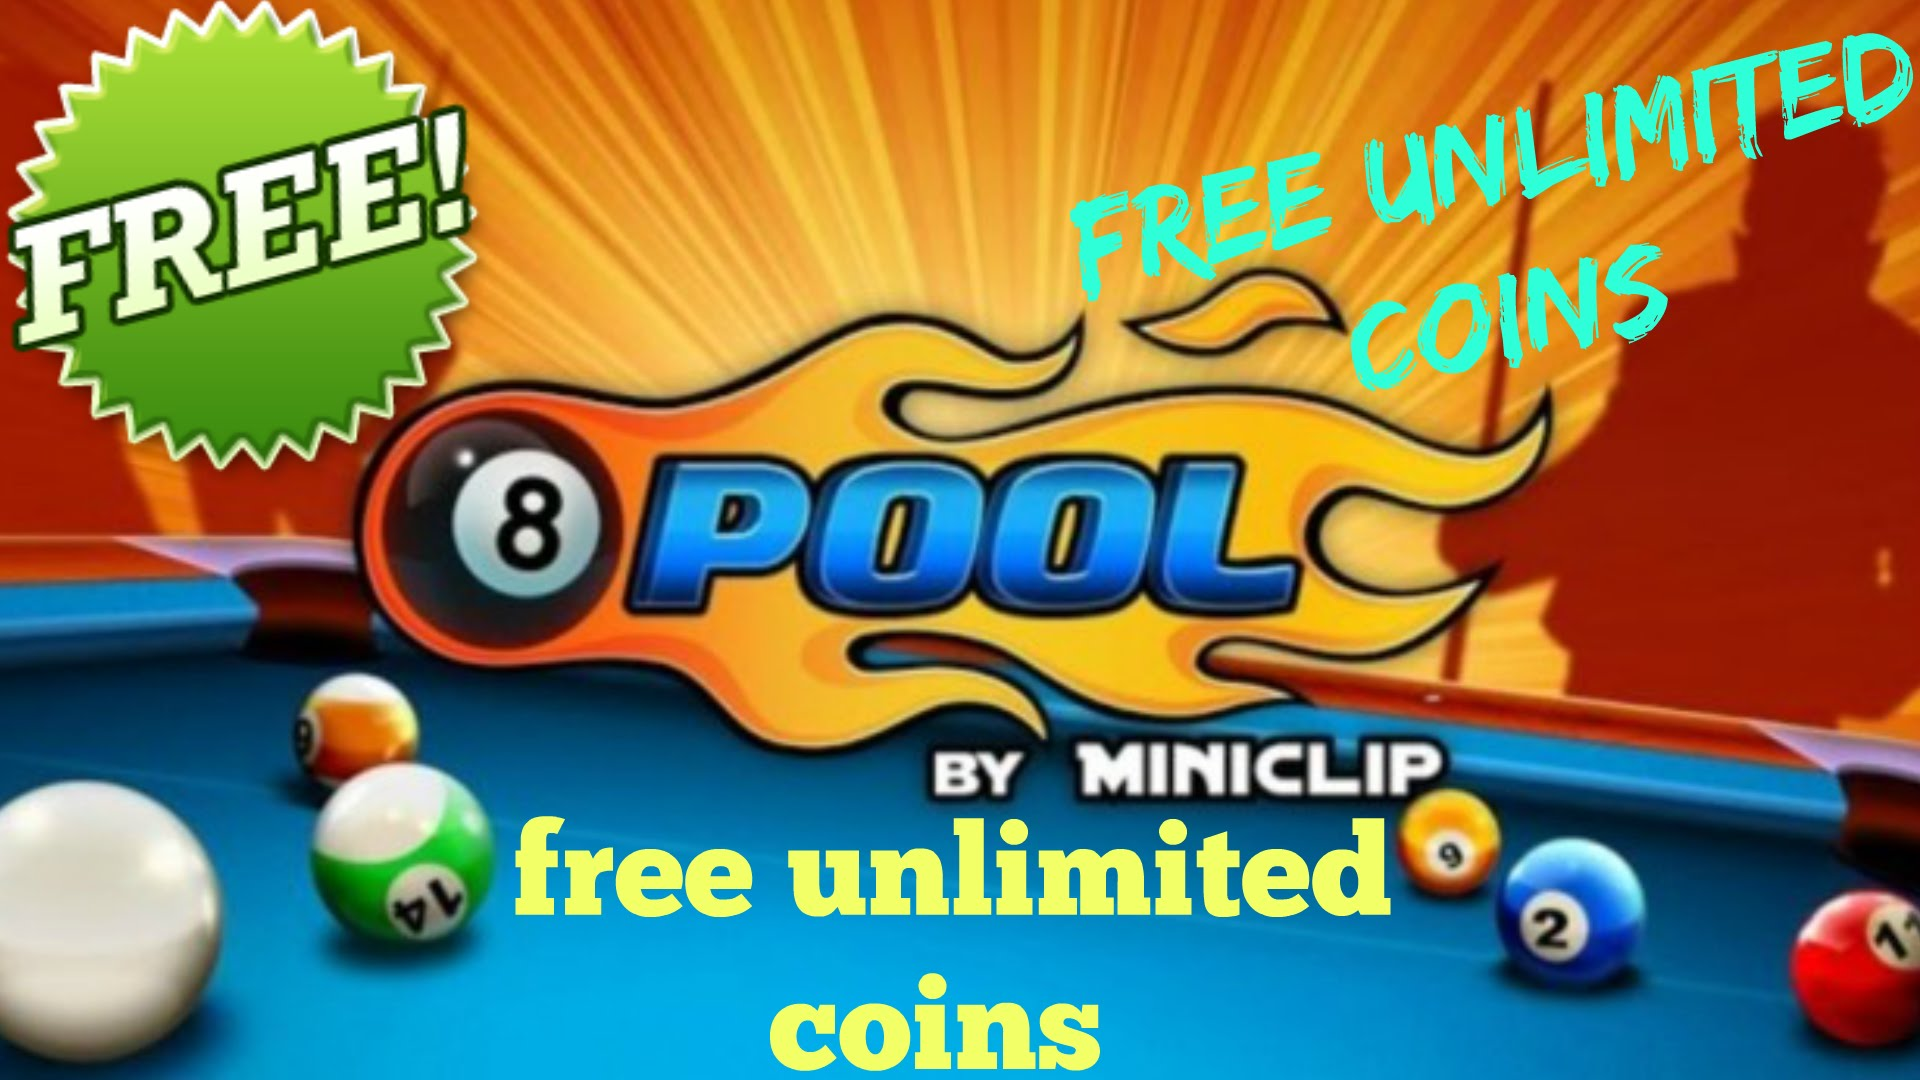 Fresh Update 8BALL.XYZ 8 BALL POOL